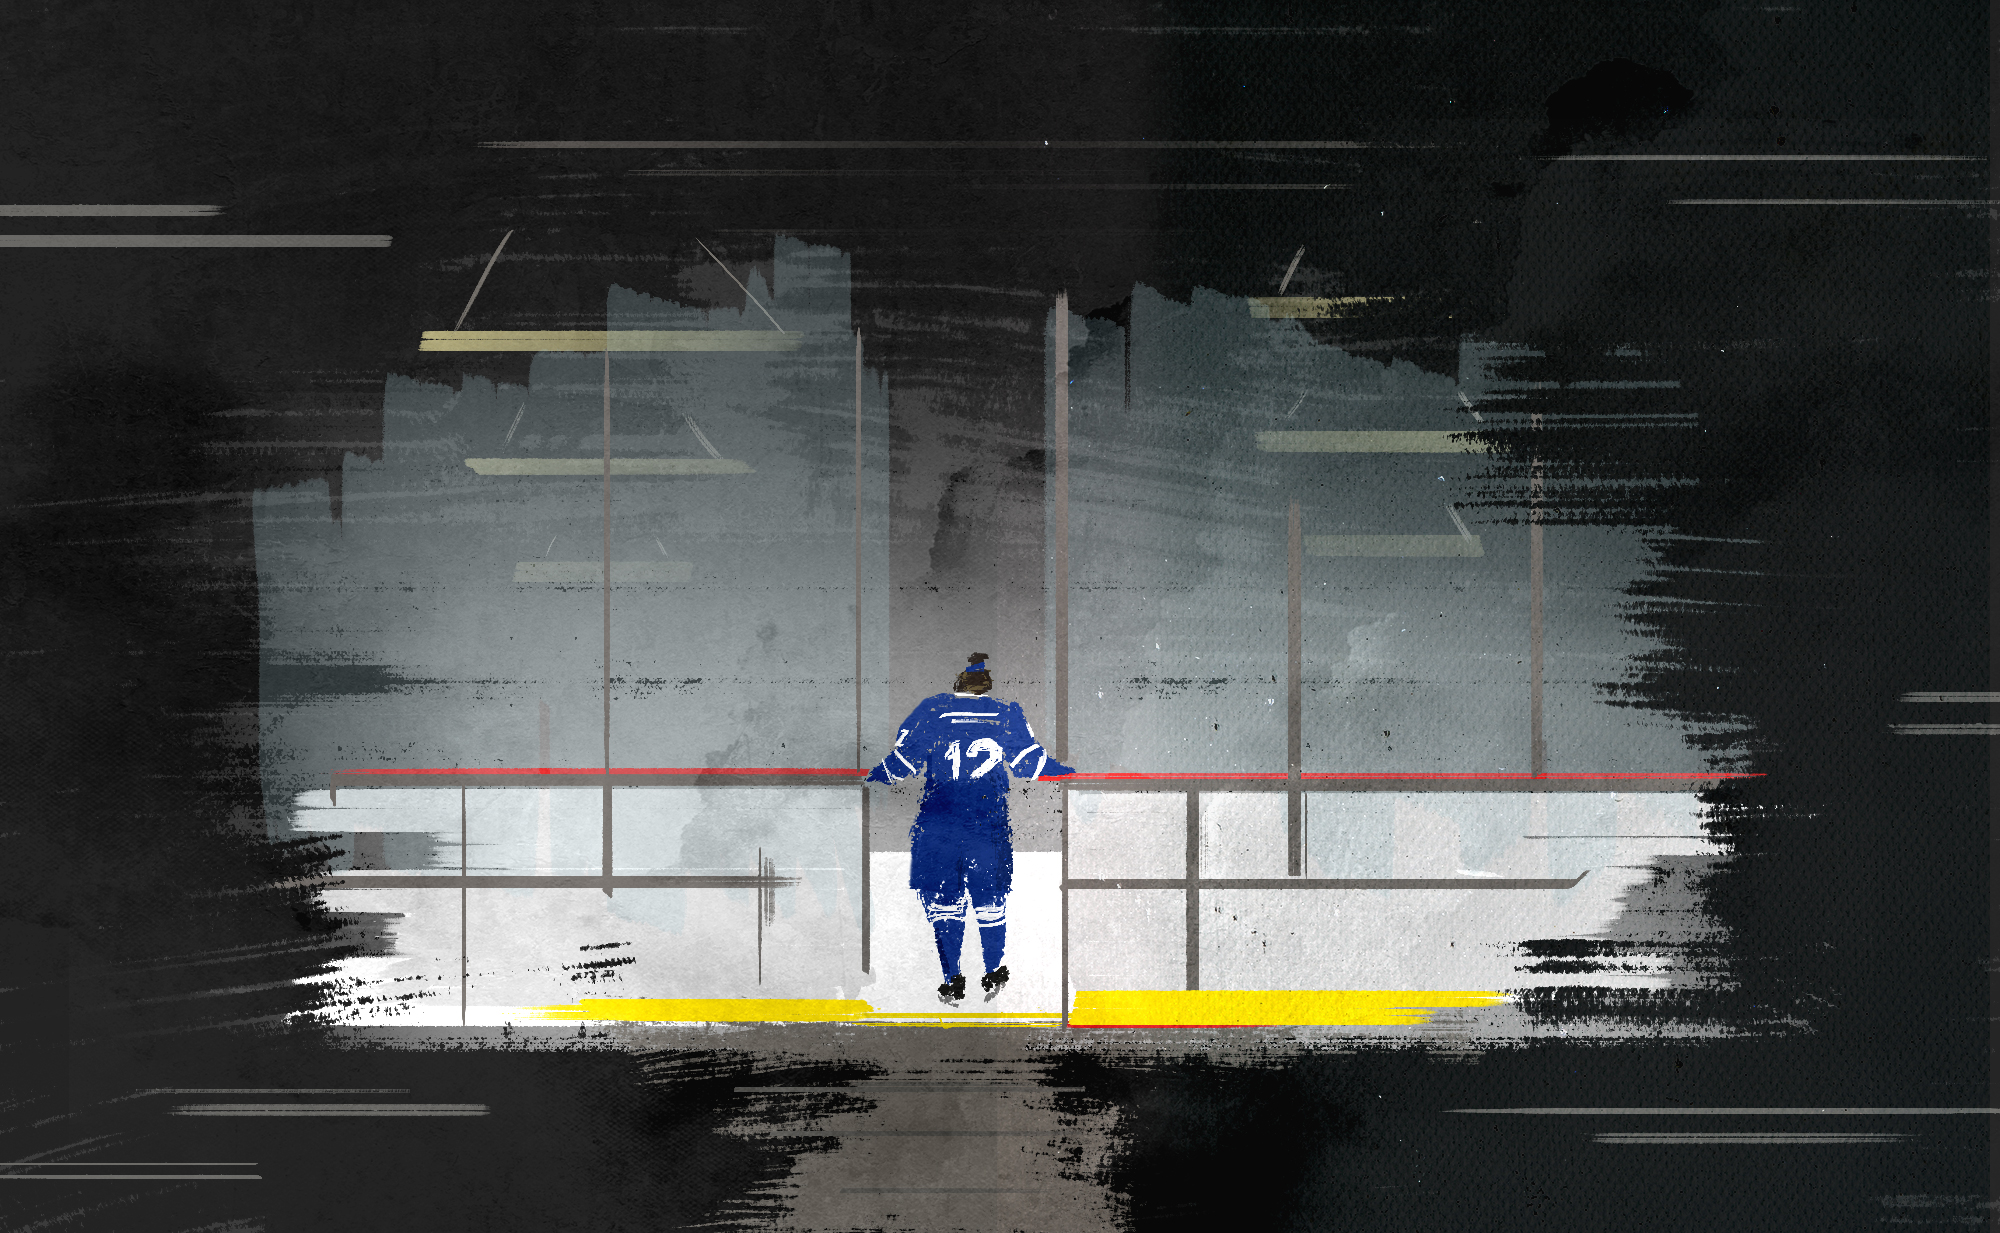 Illustration of a women's hockey player stepping onto the ice in an empty arena, surrounded by darkness.